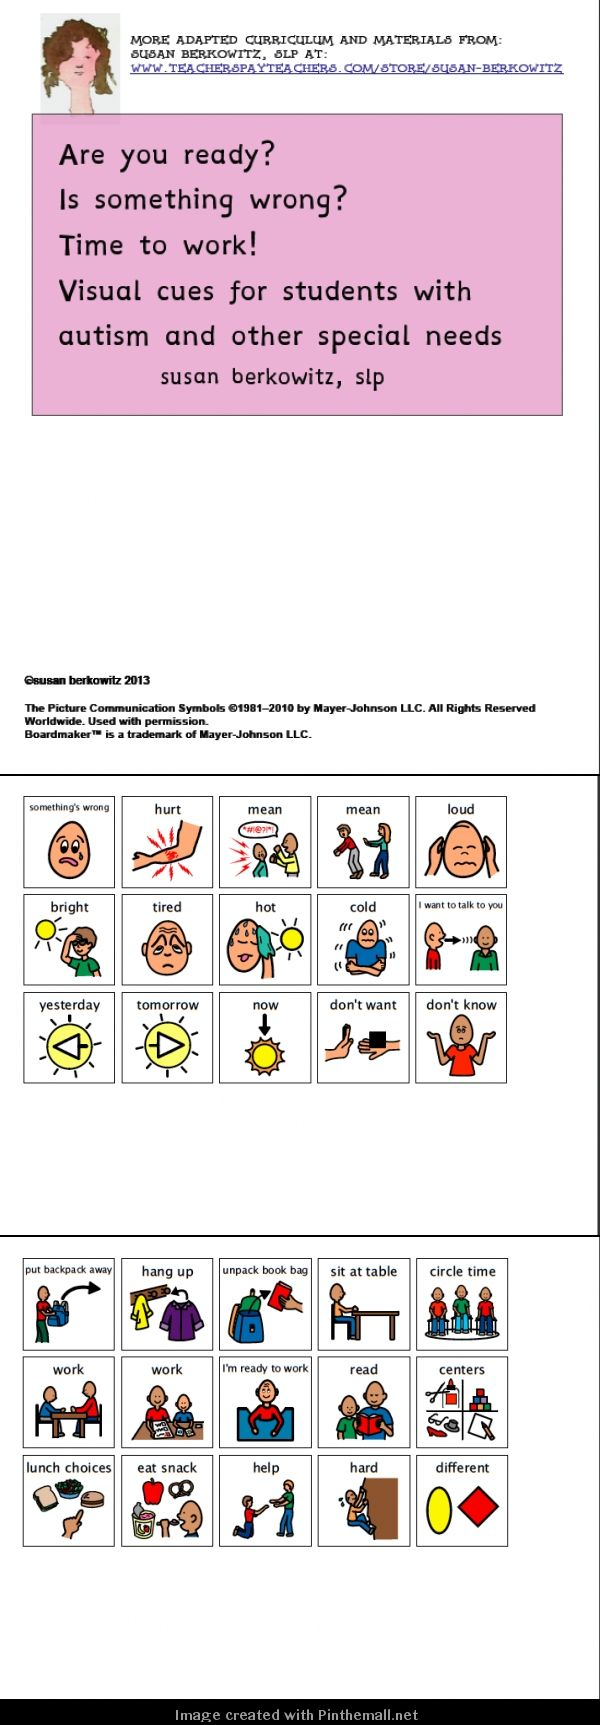 Visual cues for morning routine, ready to work, and finding out what's wrong.http://www.teacherspayteachers.com/Product/Visual-cues-get-ready-tell-whats-wrong-_-autism-_other-special-education-966690: $ - created via http://pinthemall.net